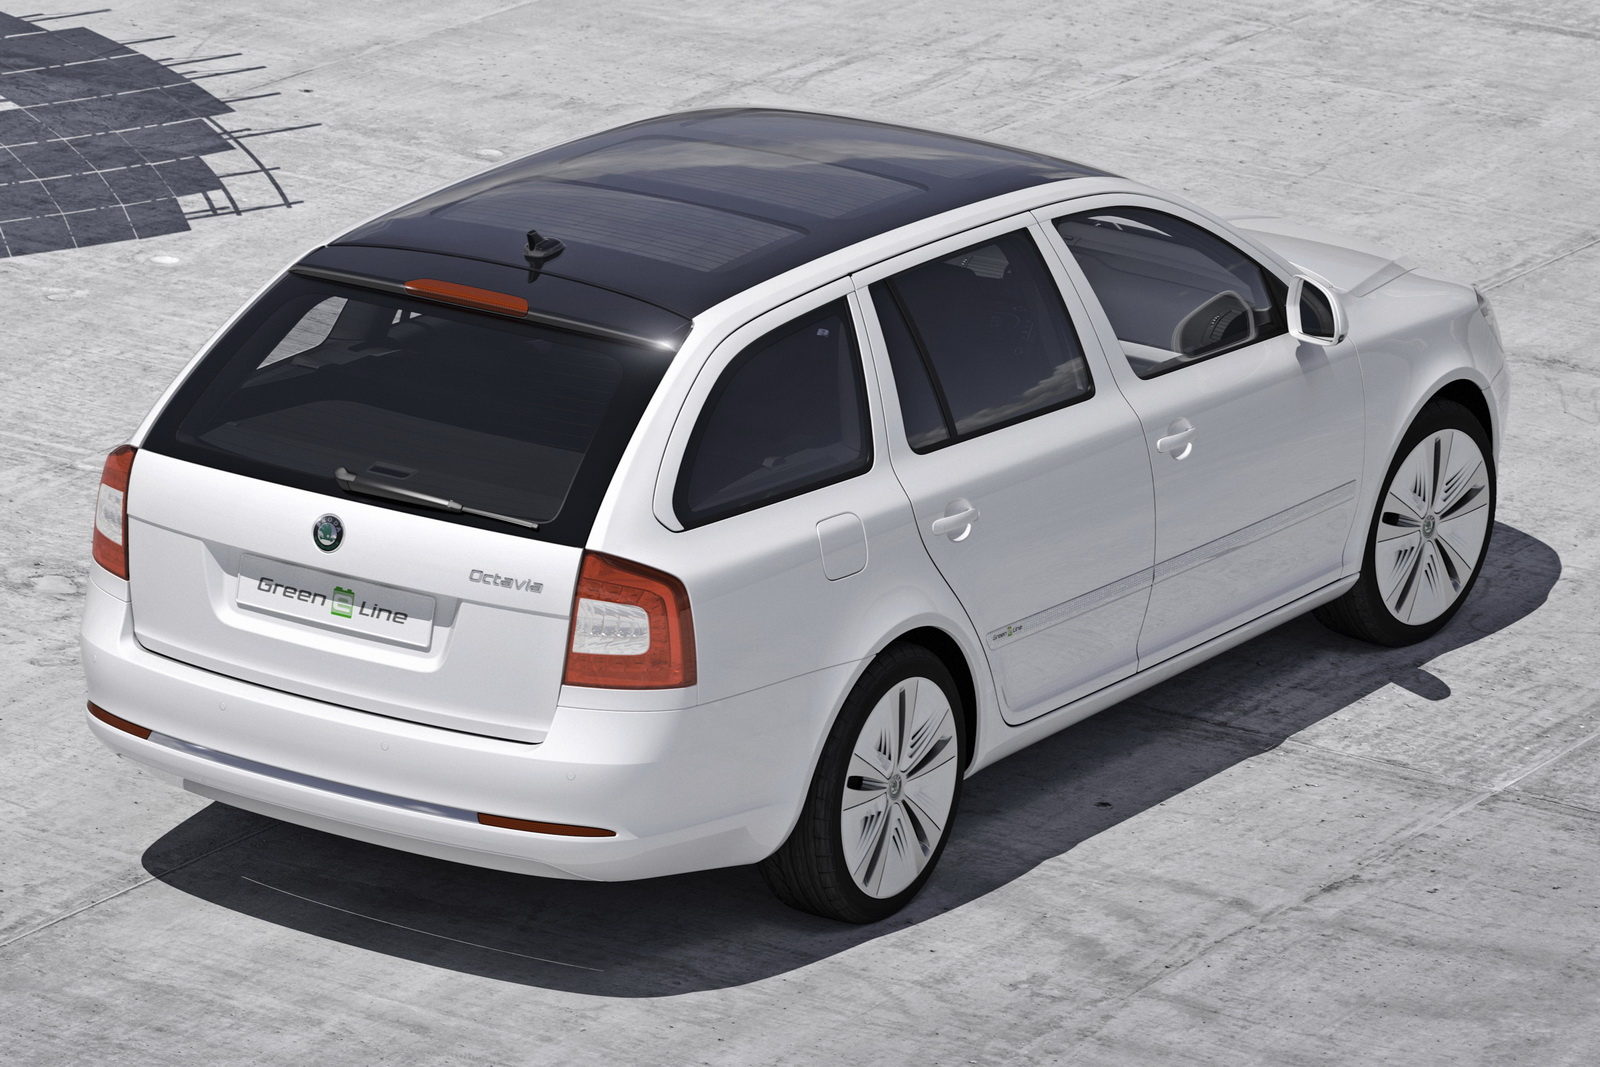 2017 Skoda Octavia Green E Line Concept photo - 4